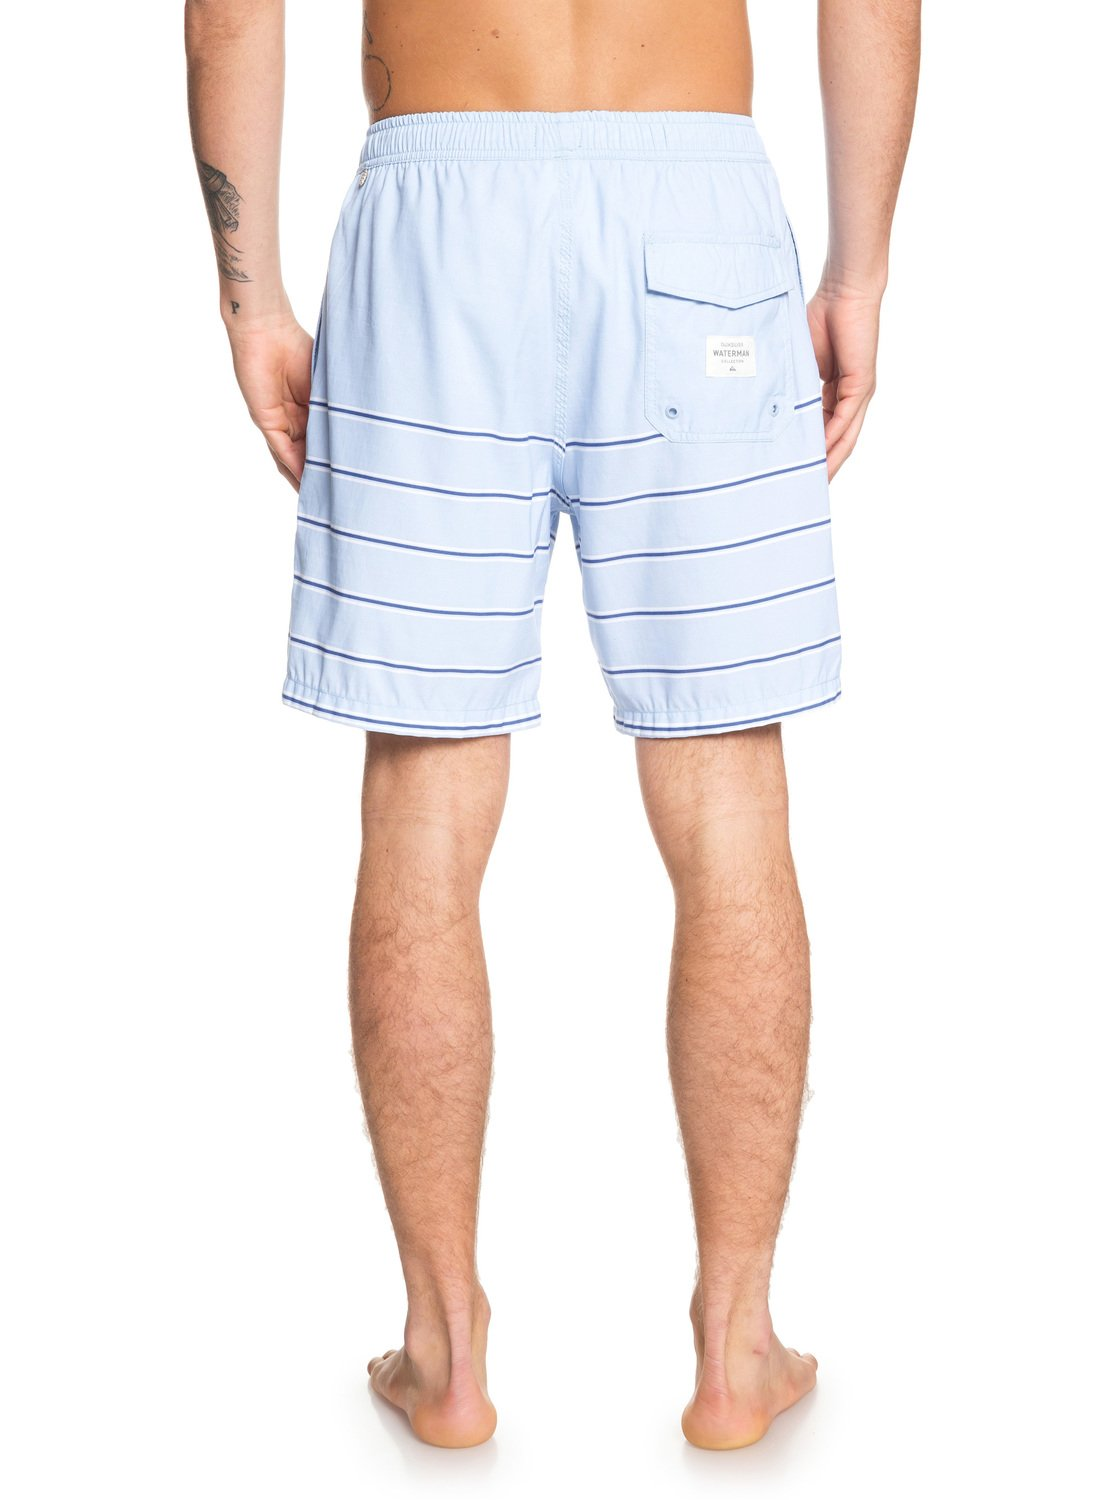 77bd0f1d59 Quiksilver Waterman Swim Trunks - The Best Swim In The World